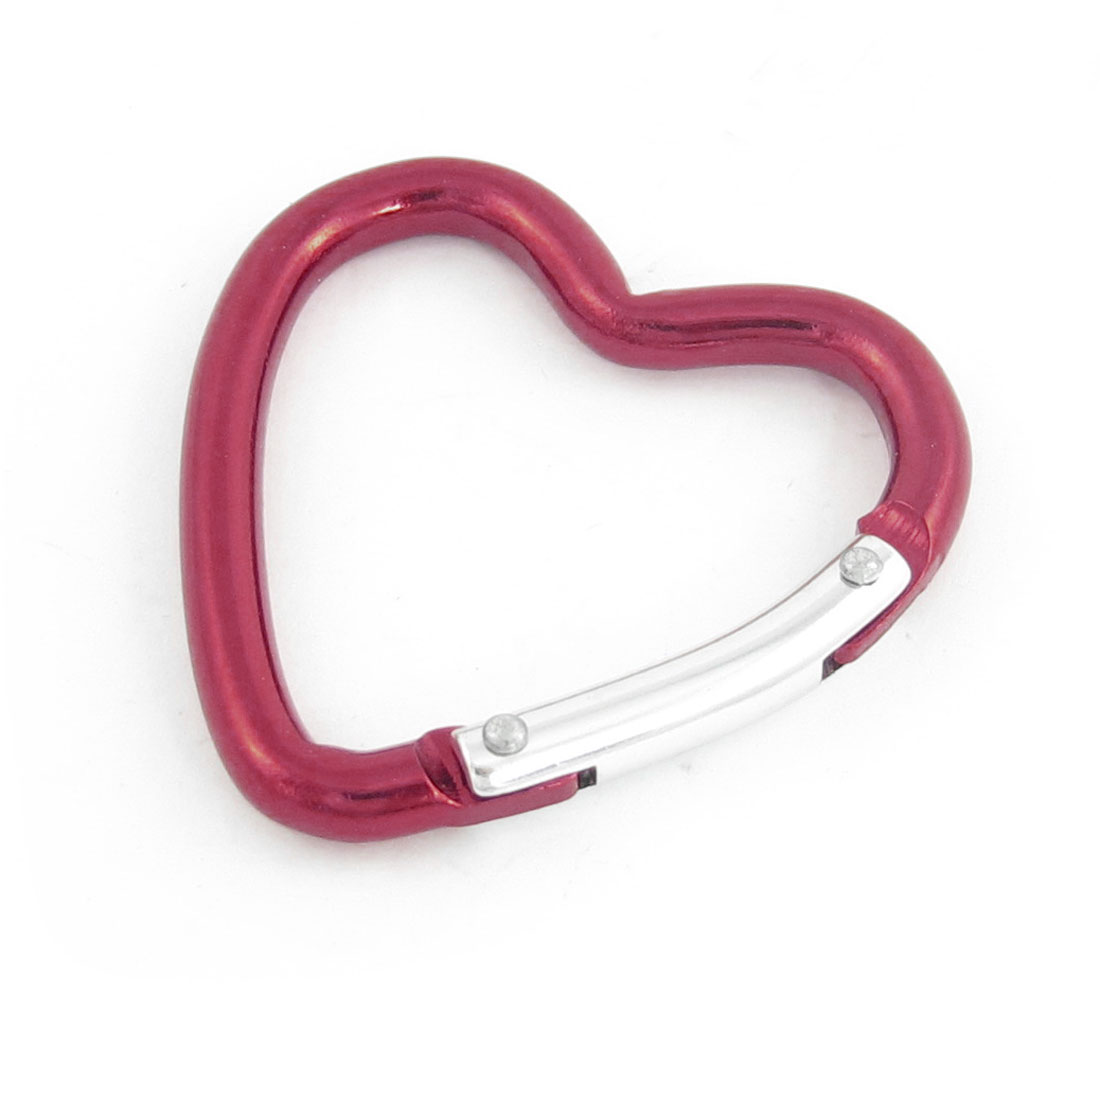 "Burgundy Aluminum Alloy 2.2"" Long Heart Shaped Carabiner Hook Clip Key Holder"